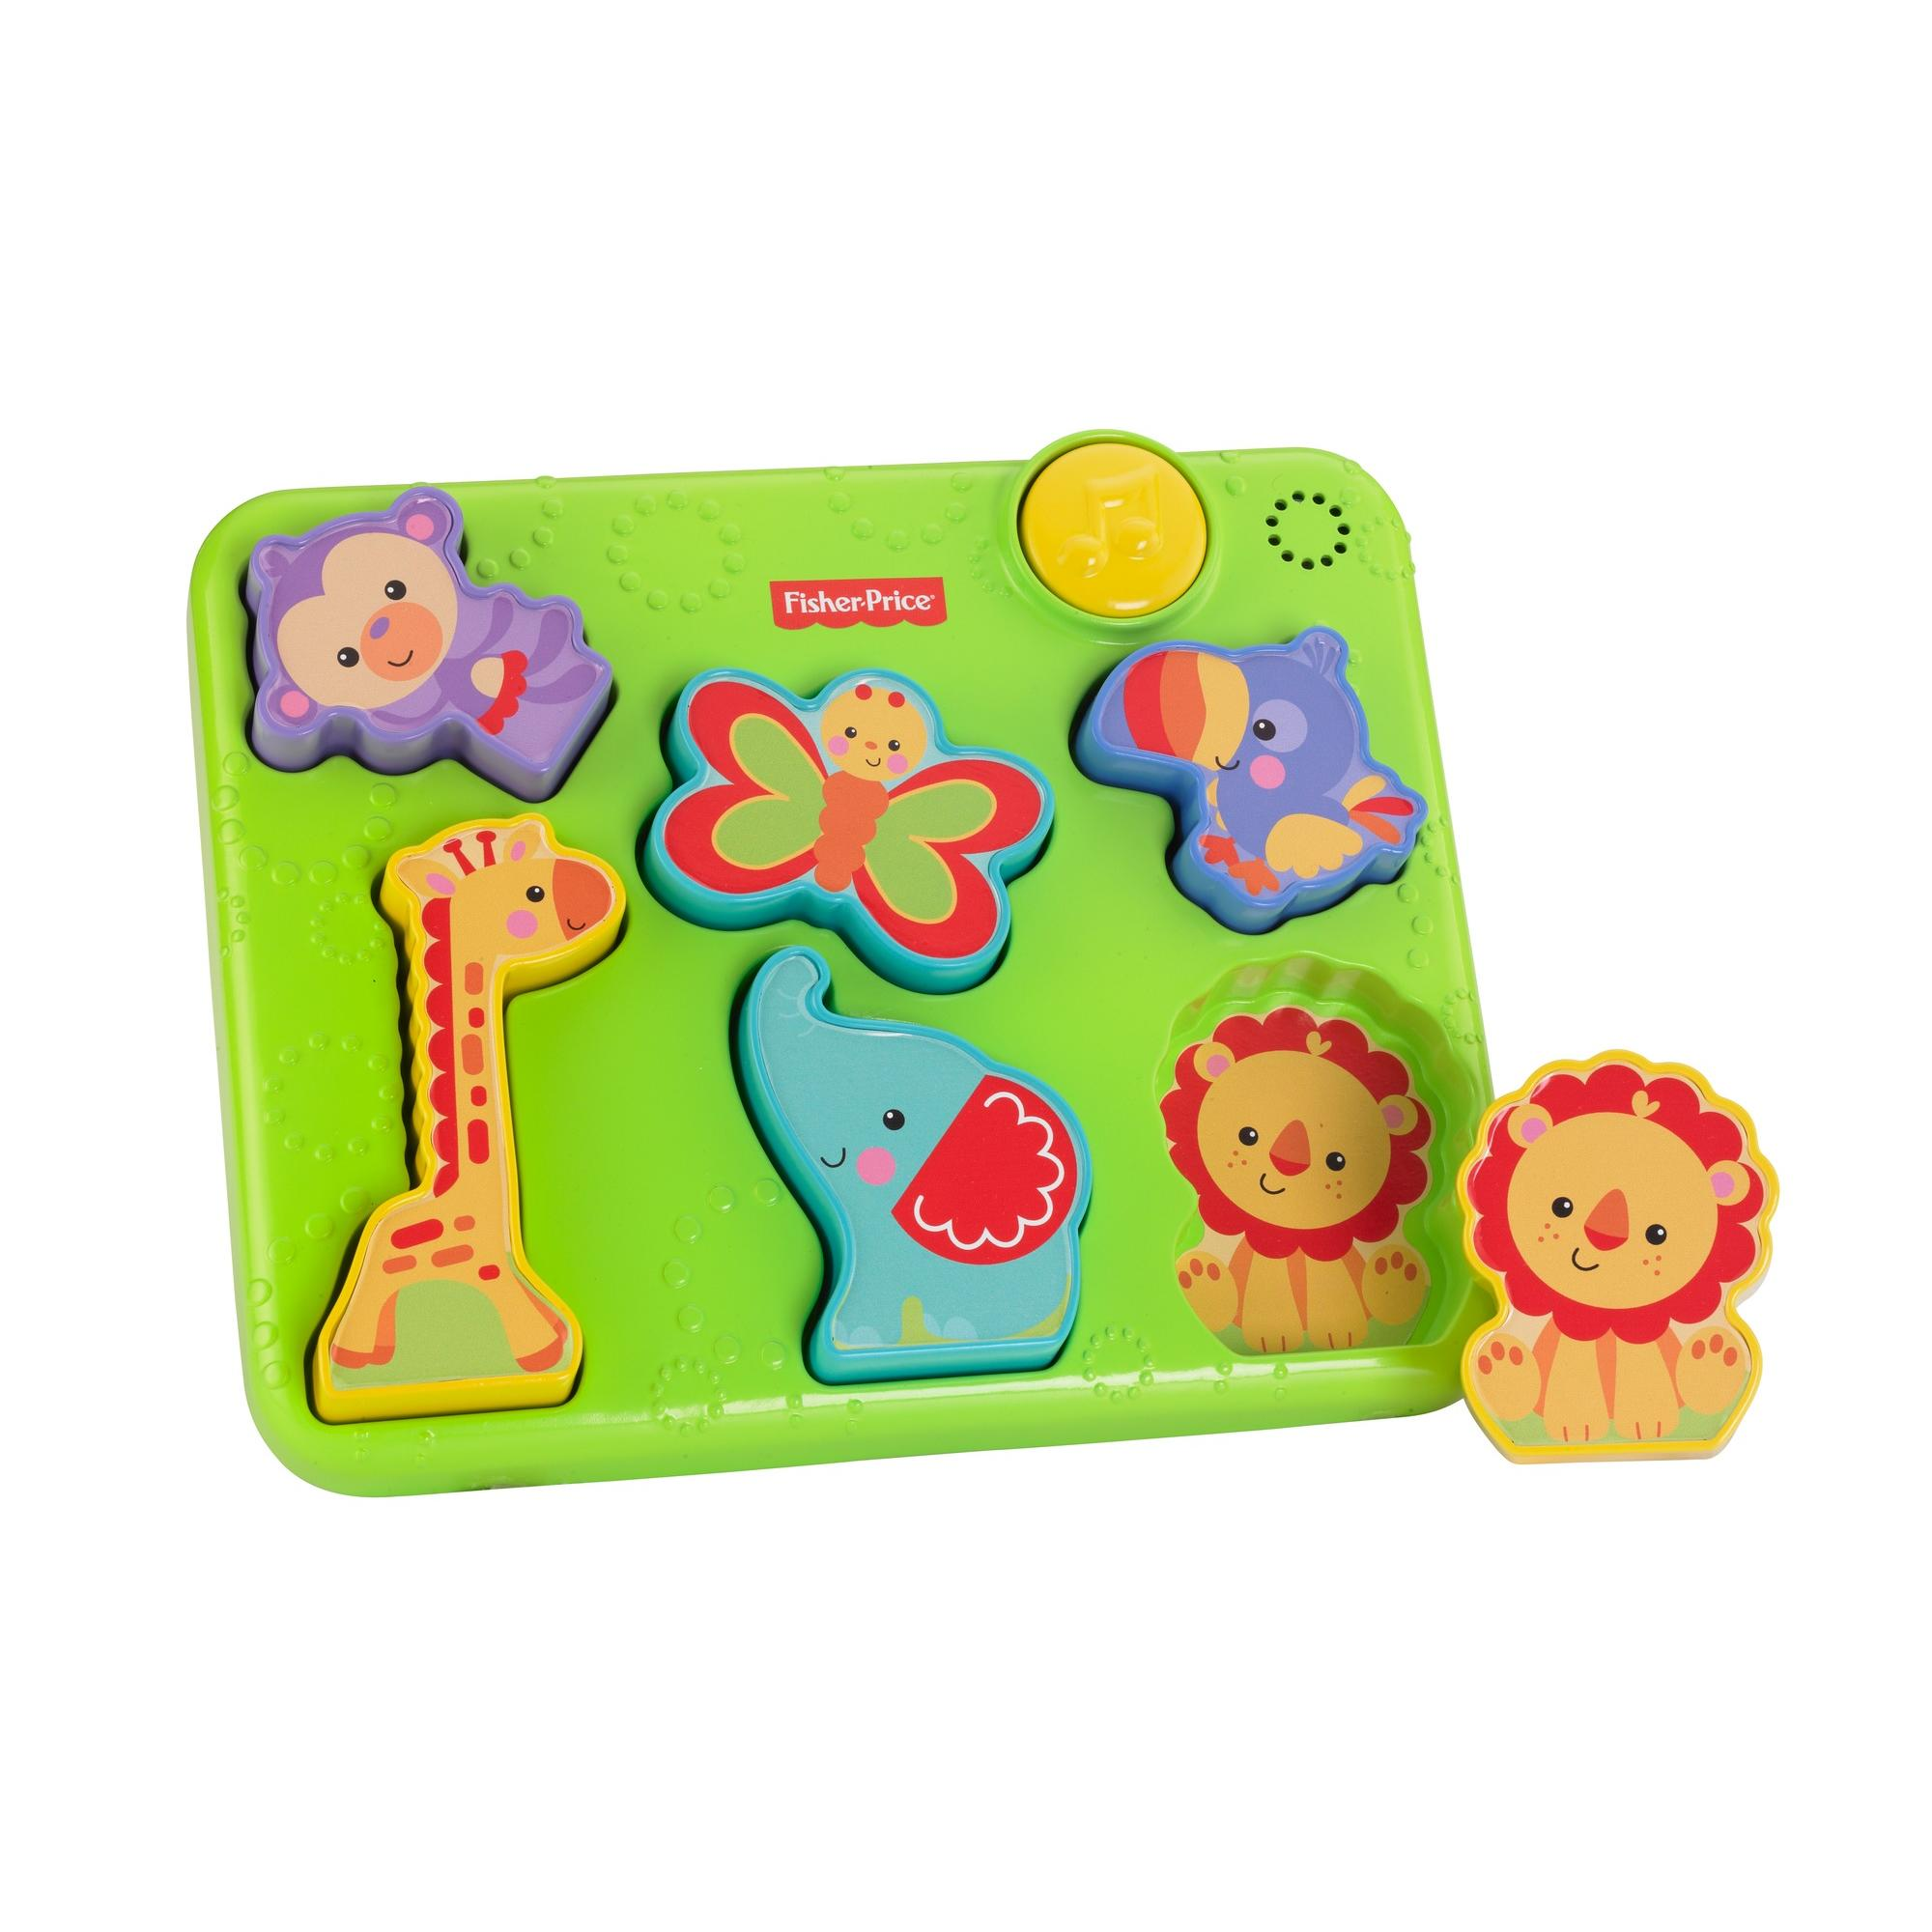 Fisher-Price Silly Sounds Puzzle